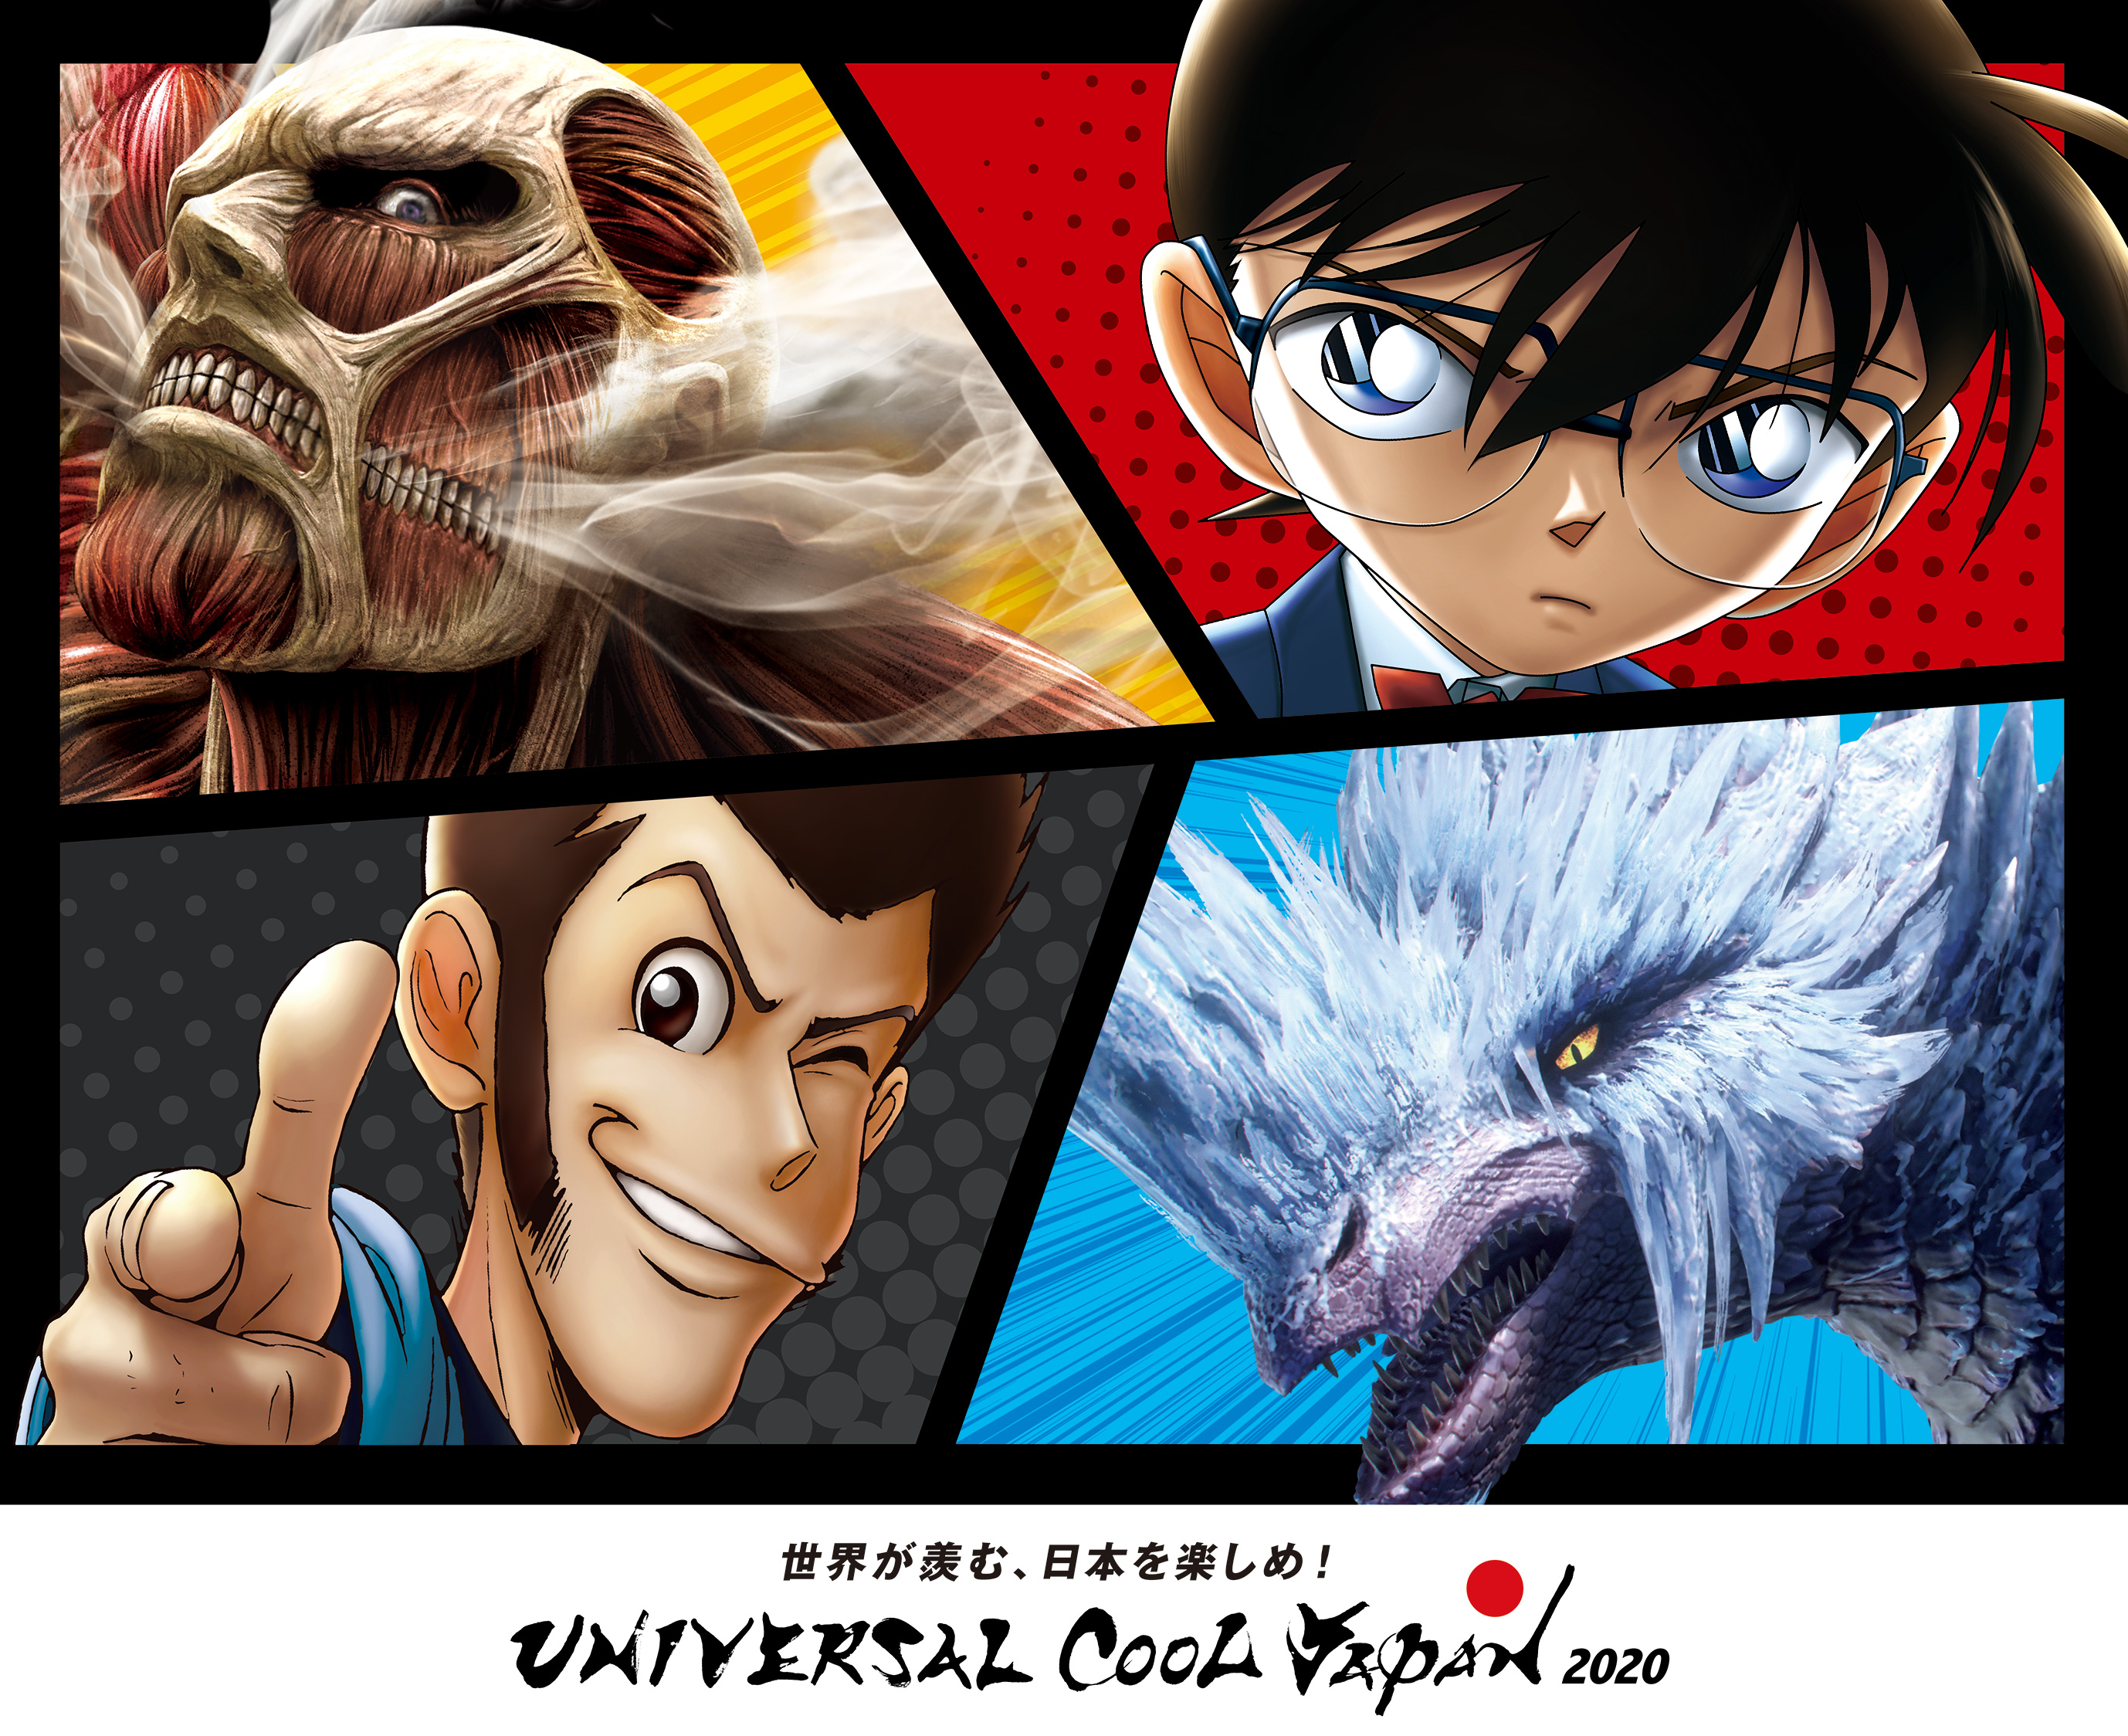 ユニバーサル・クールジャパン 2020 Universal Cool Japan New Attractions